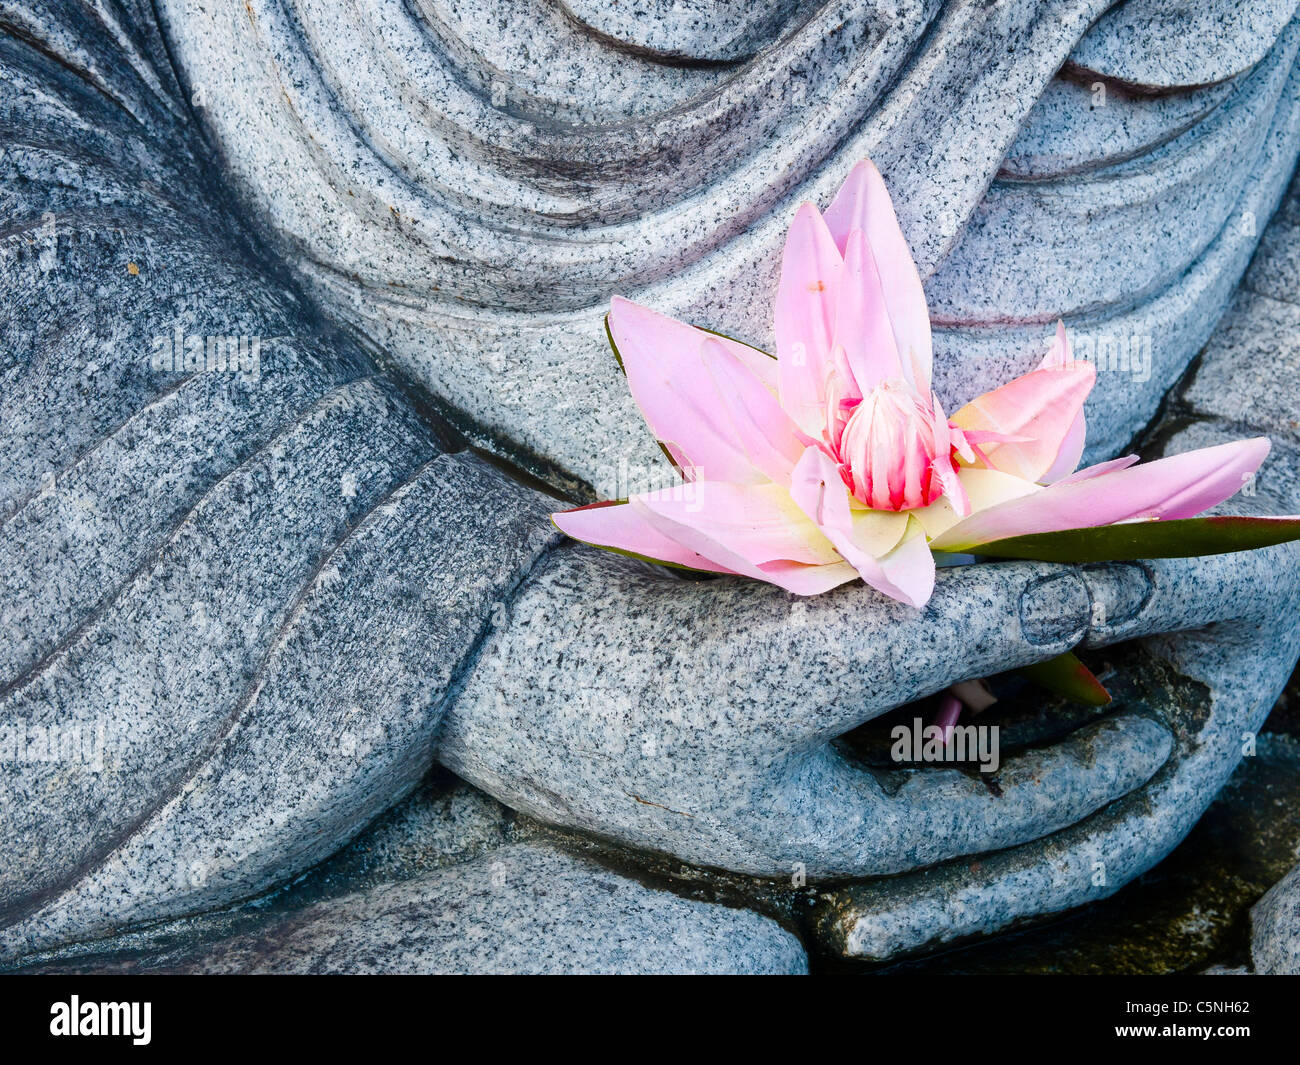 Buddha lotus flower stock photos buddha lotus flower stock images buddha image statue hand holding pink lotus flower stock image izmirmasajfo